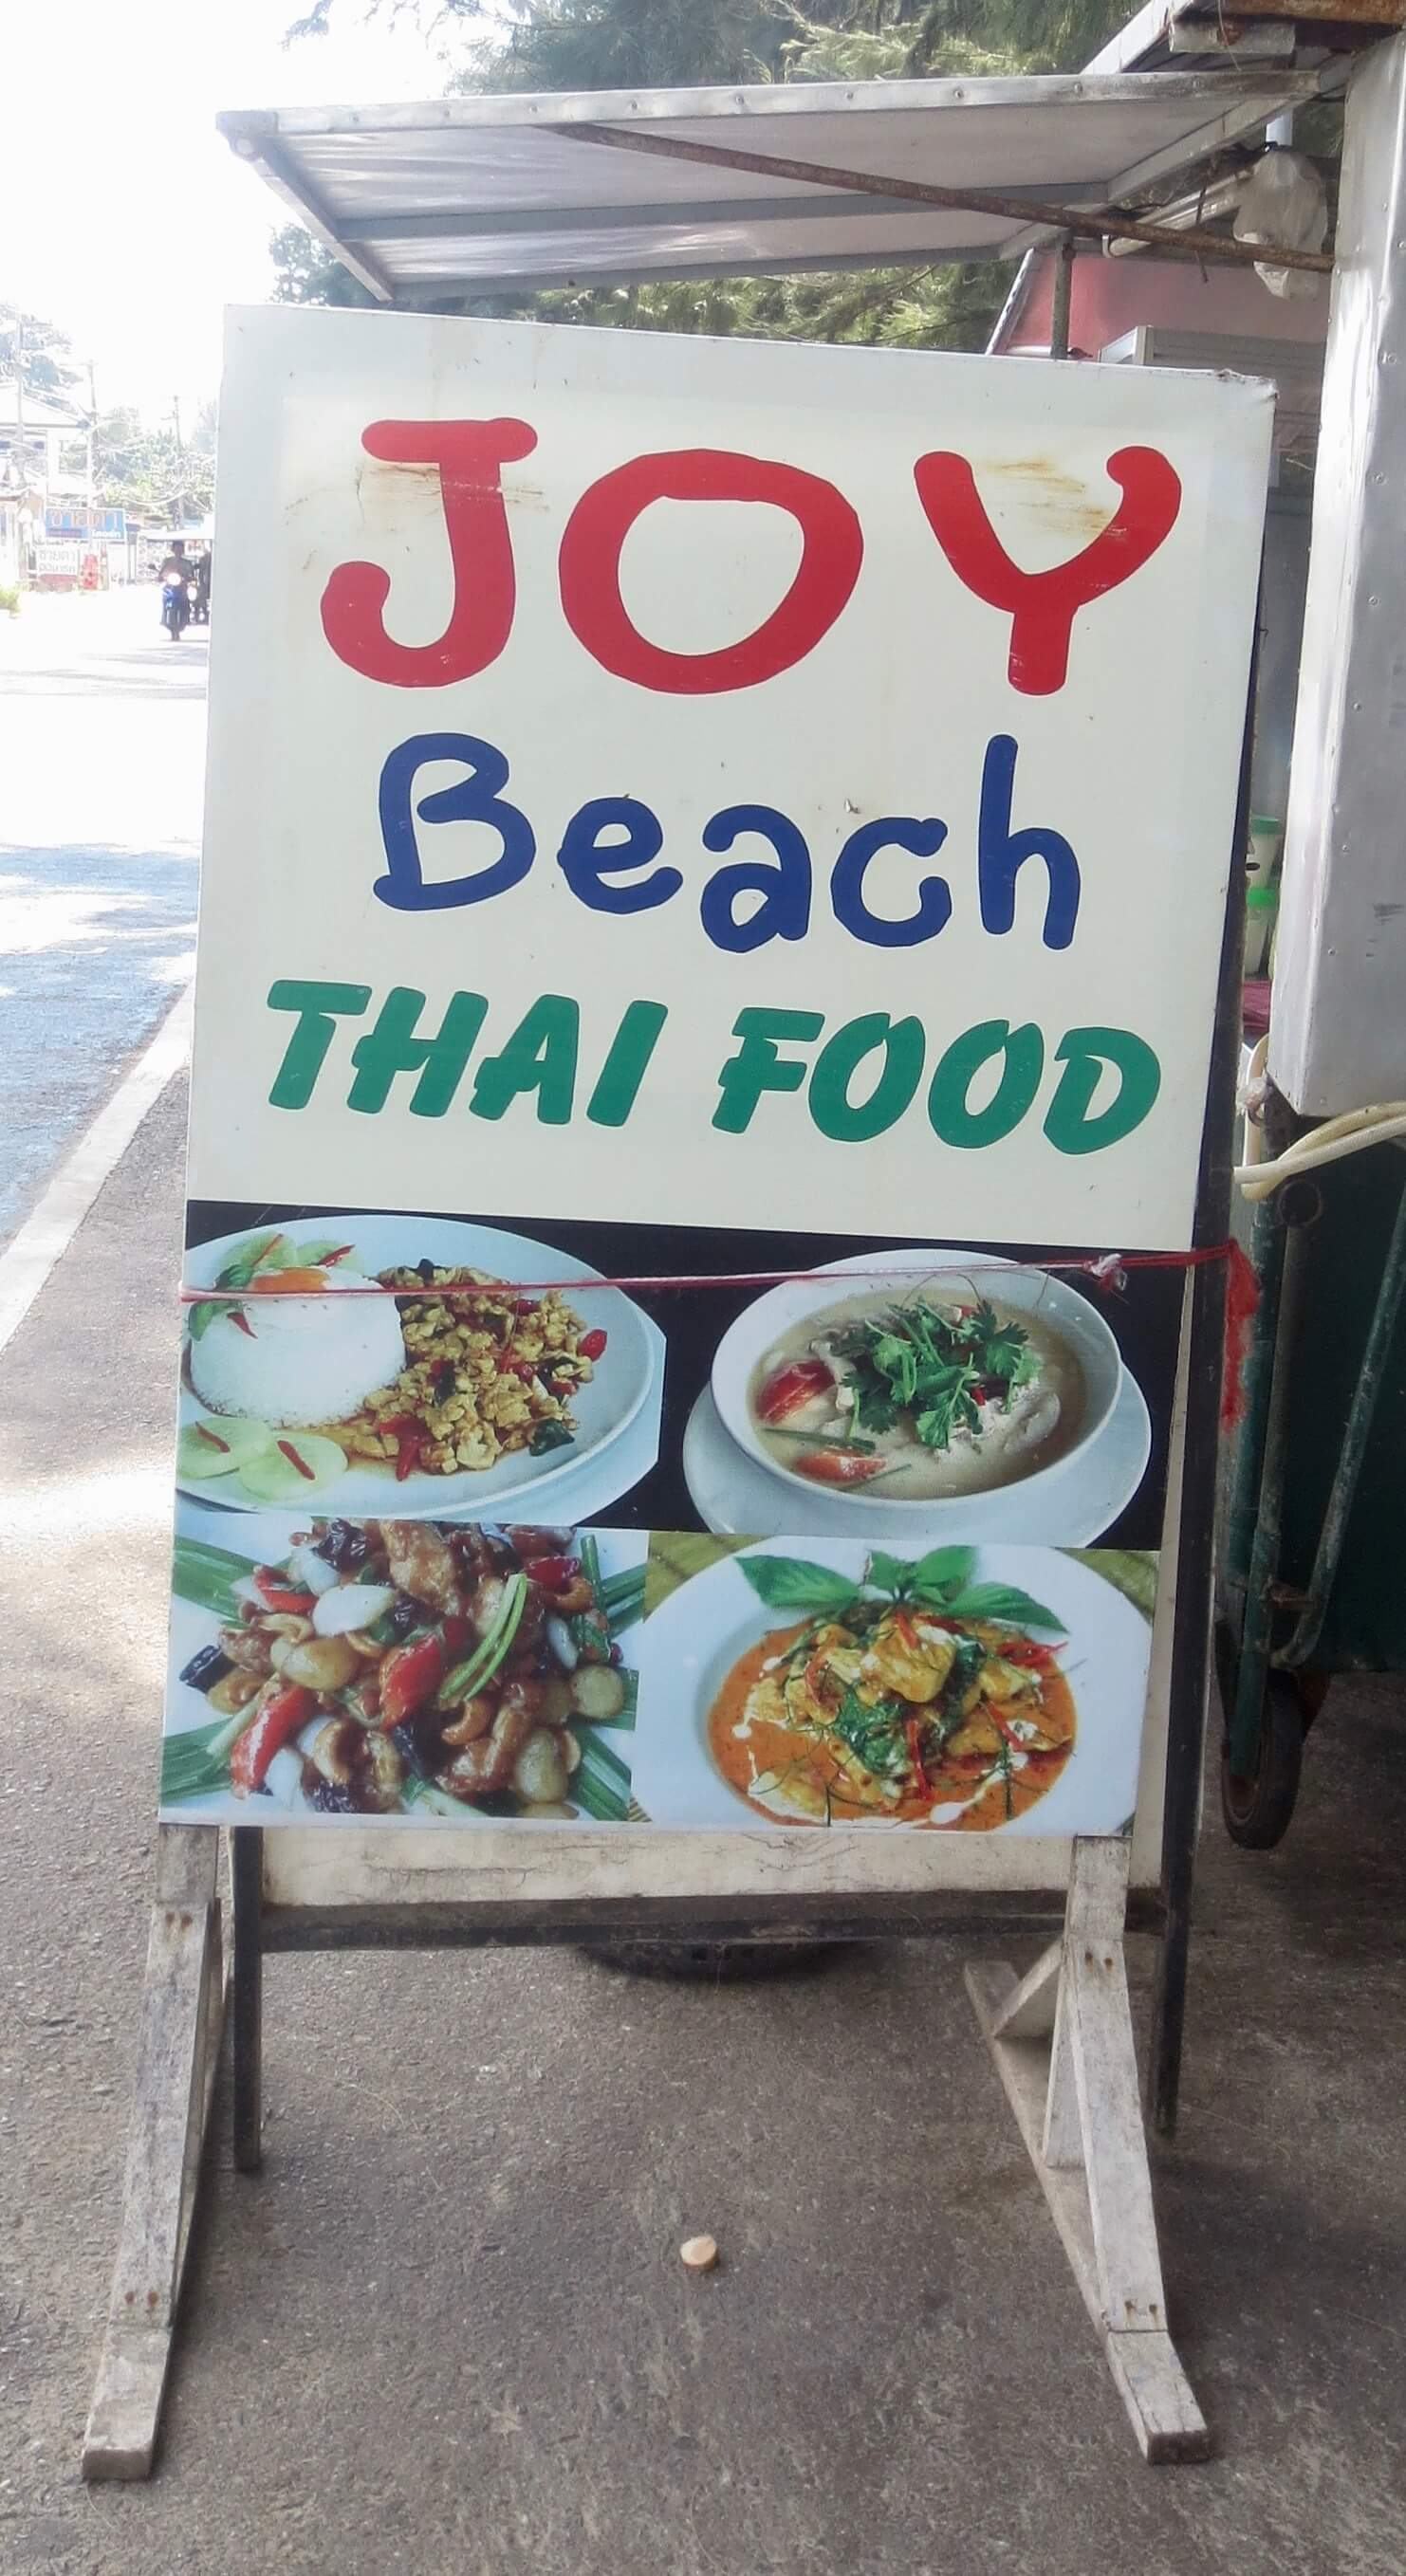 Joy Beach Thai food in Mae Rumphueng, Rayong province